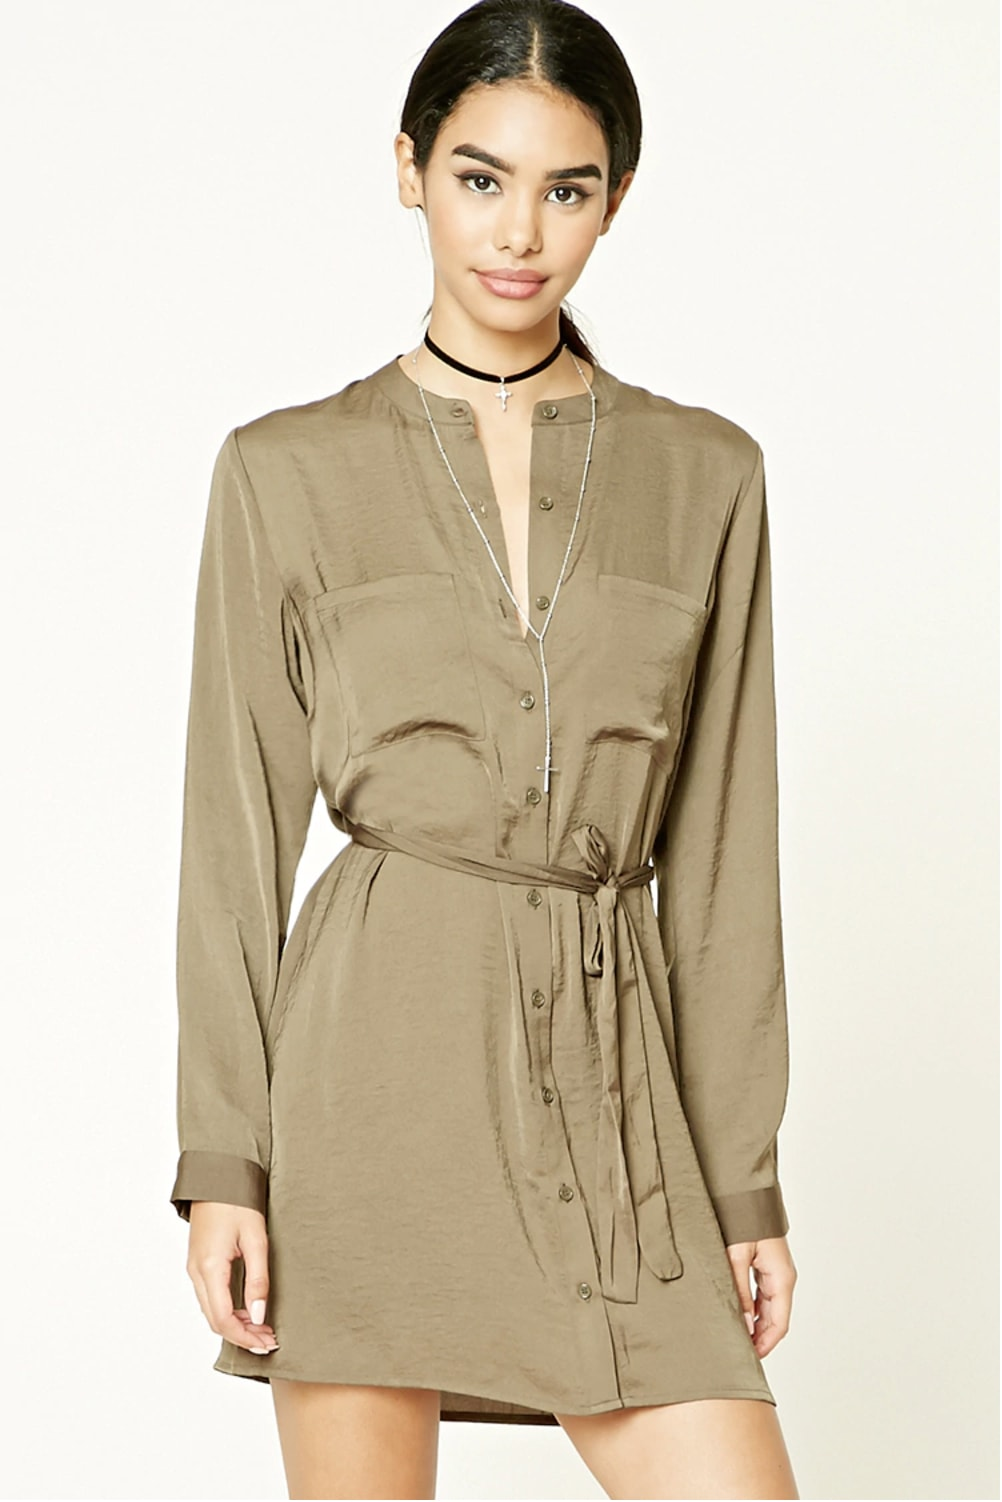 Forever 21 Satin Button Front Shirt Dress in Olive